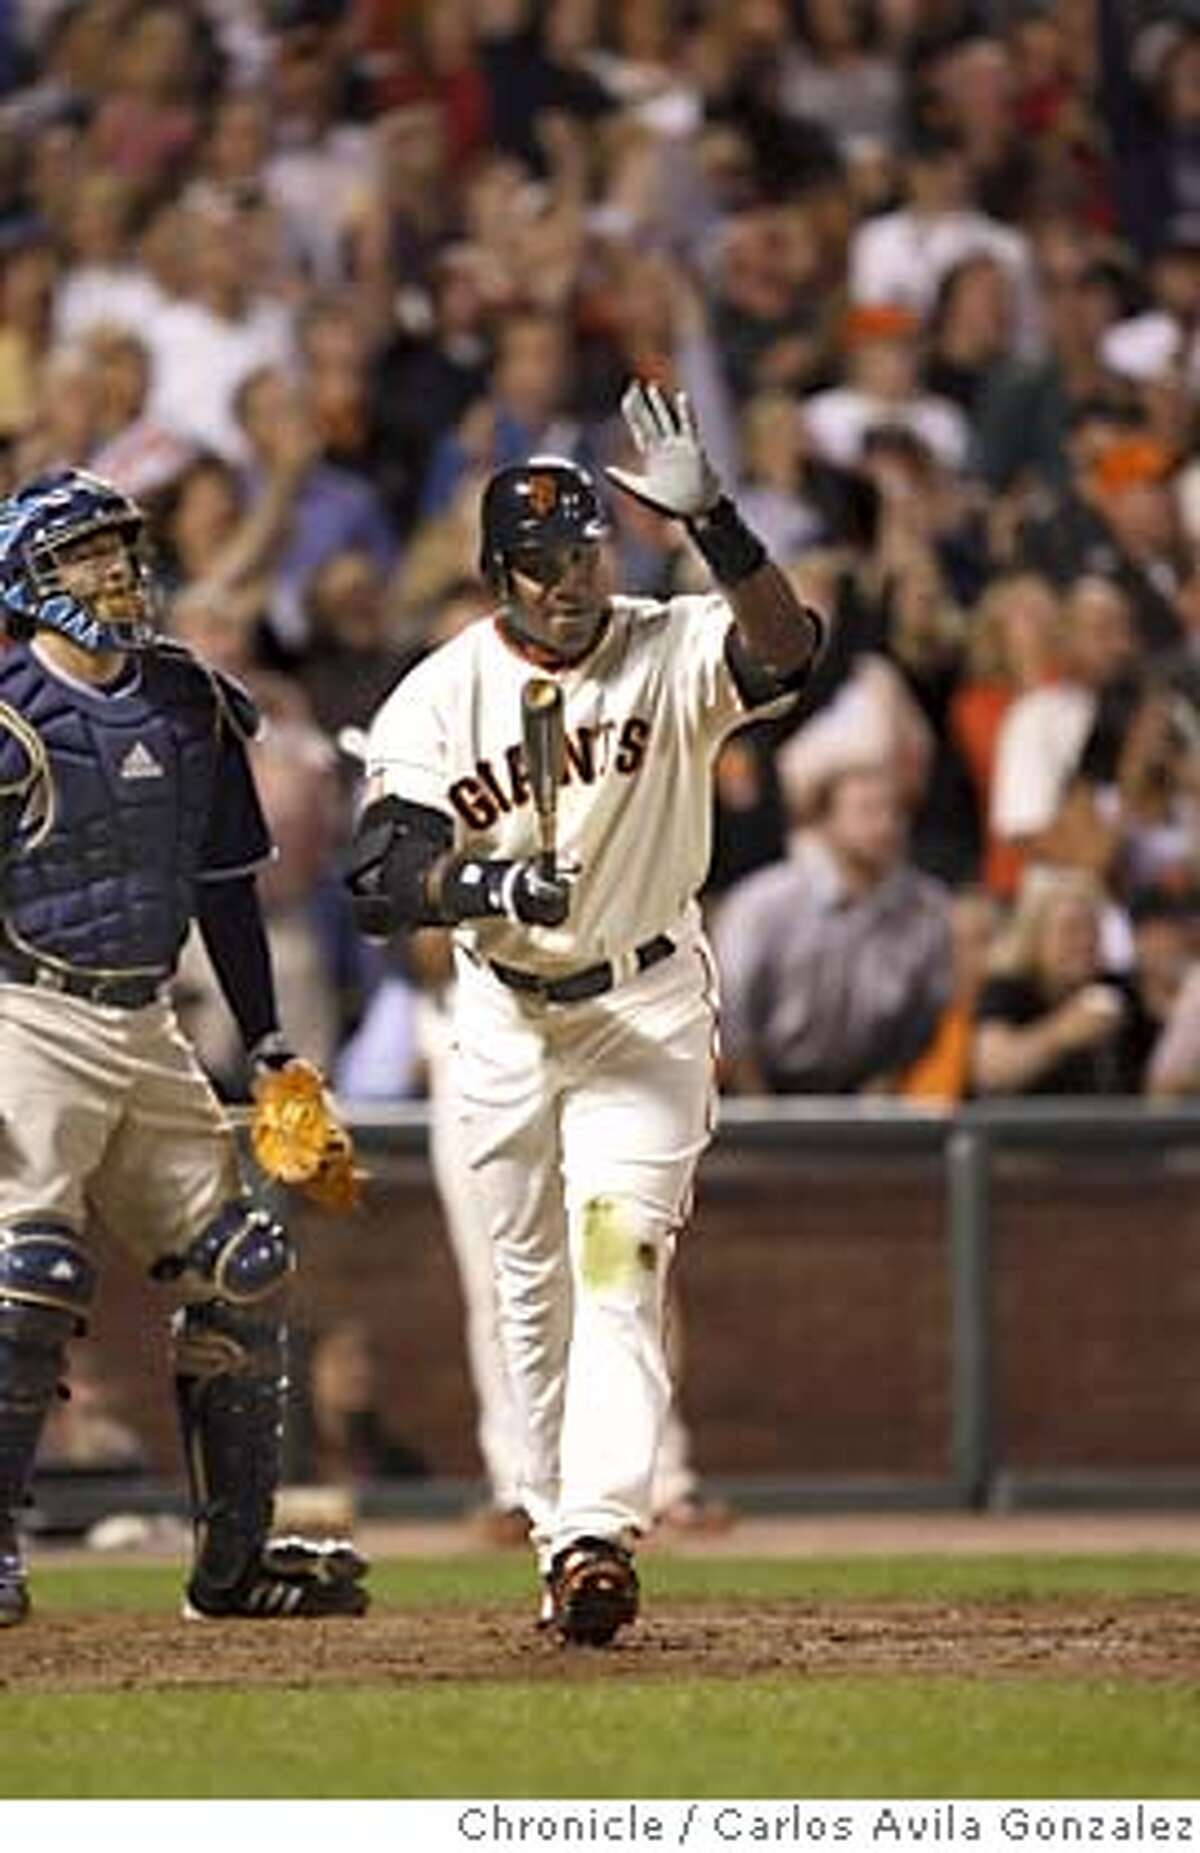 GIANTS27_0021_CAG.JPG Barry Bonds slaps his bat after popping out deep to center field in his last at-bat as a San Francisco Giant. Barry Bonds bids farewell to the fans at AT&T Park. The San Francisco Giants played the San Diego Padres at AT&T Park in San Francisco, Ca., on Wednesday, September 26, 2007. This game marks the end of Barry Bonds's career as a Giant in front of the home crowd, as he has been informed that he will not return to the team by the team's management. Photo by Carlos Avila Gonzalez/The Chronicle Photo taken on 9/26/07, in Pacifica, CA, USA. **All names cq (source)